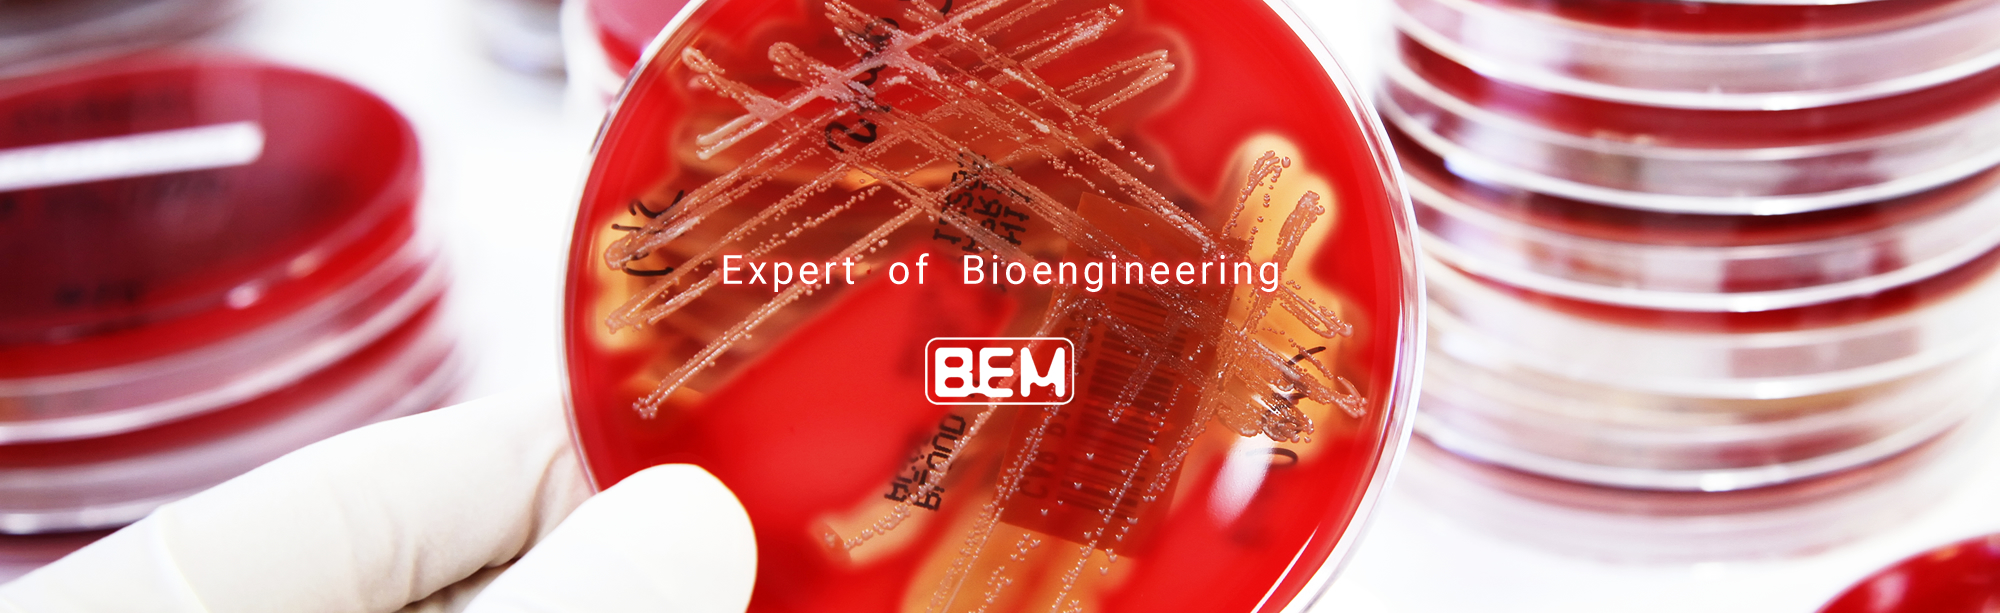 EXPERT OF BIOENGINEERING